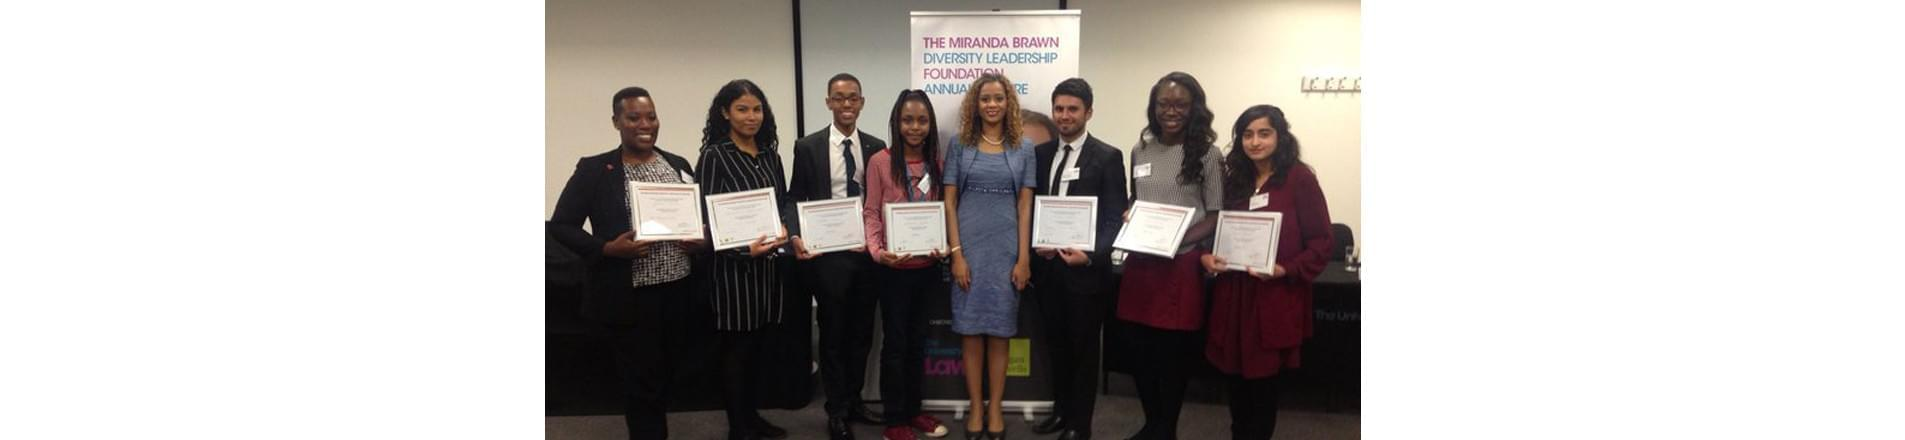 the 2016 winners of the Miranda Brawn scholarship standing in a line